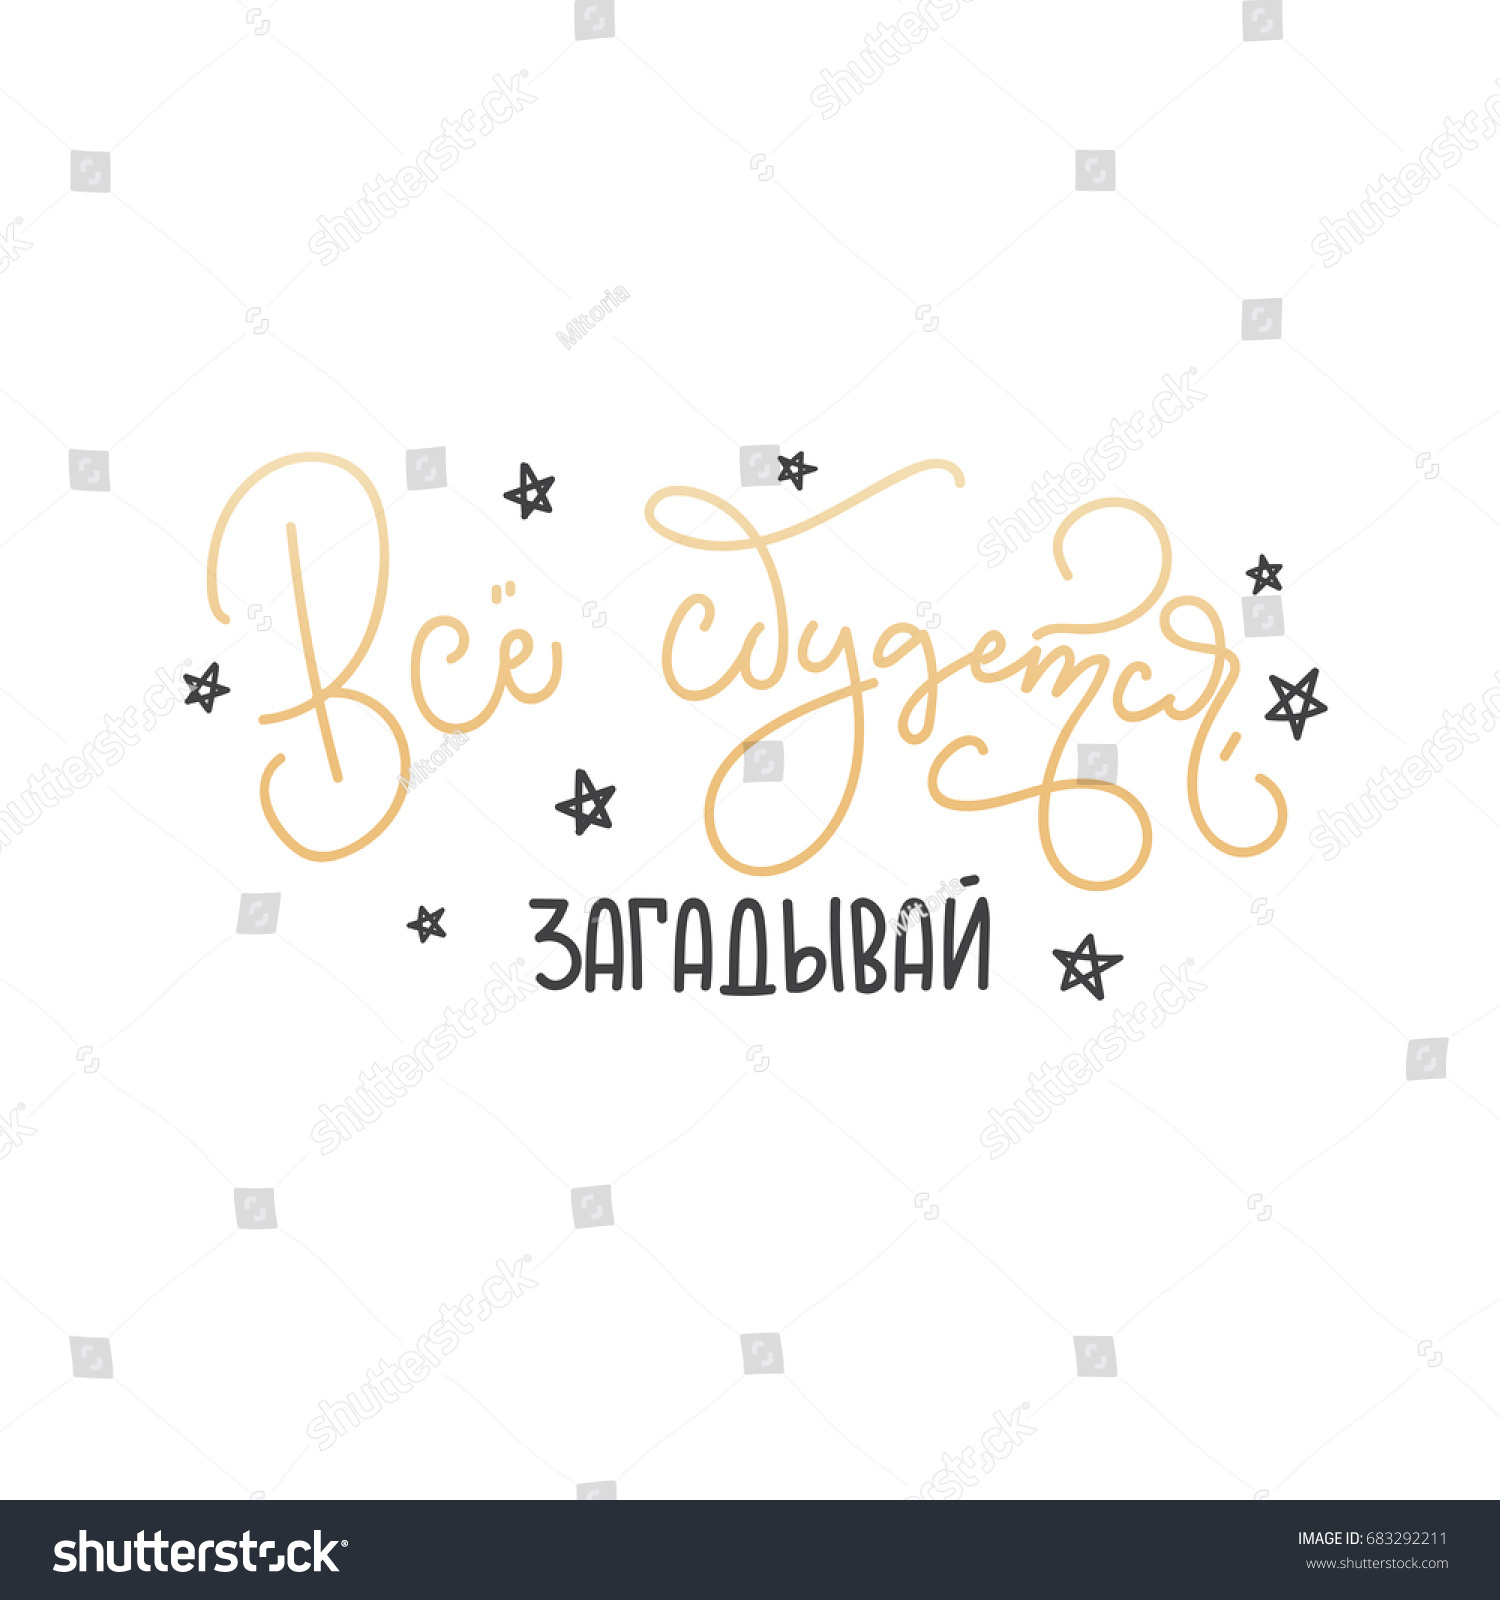 Make A Wish Quotes Russian Lettering Card Inspirational Quote Russian Stock Vector